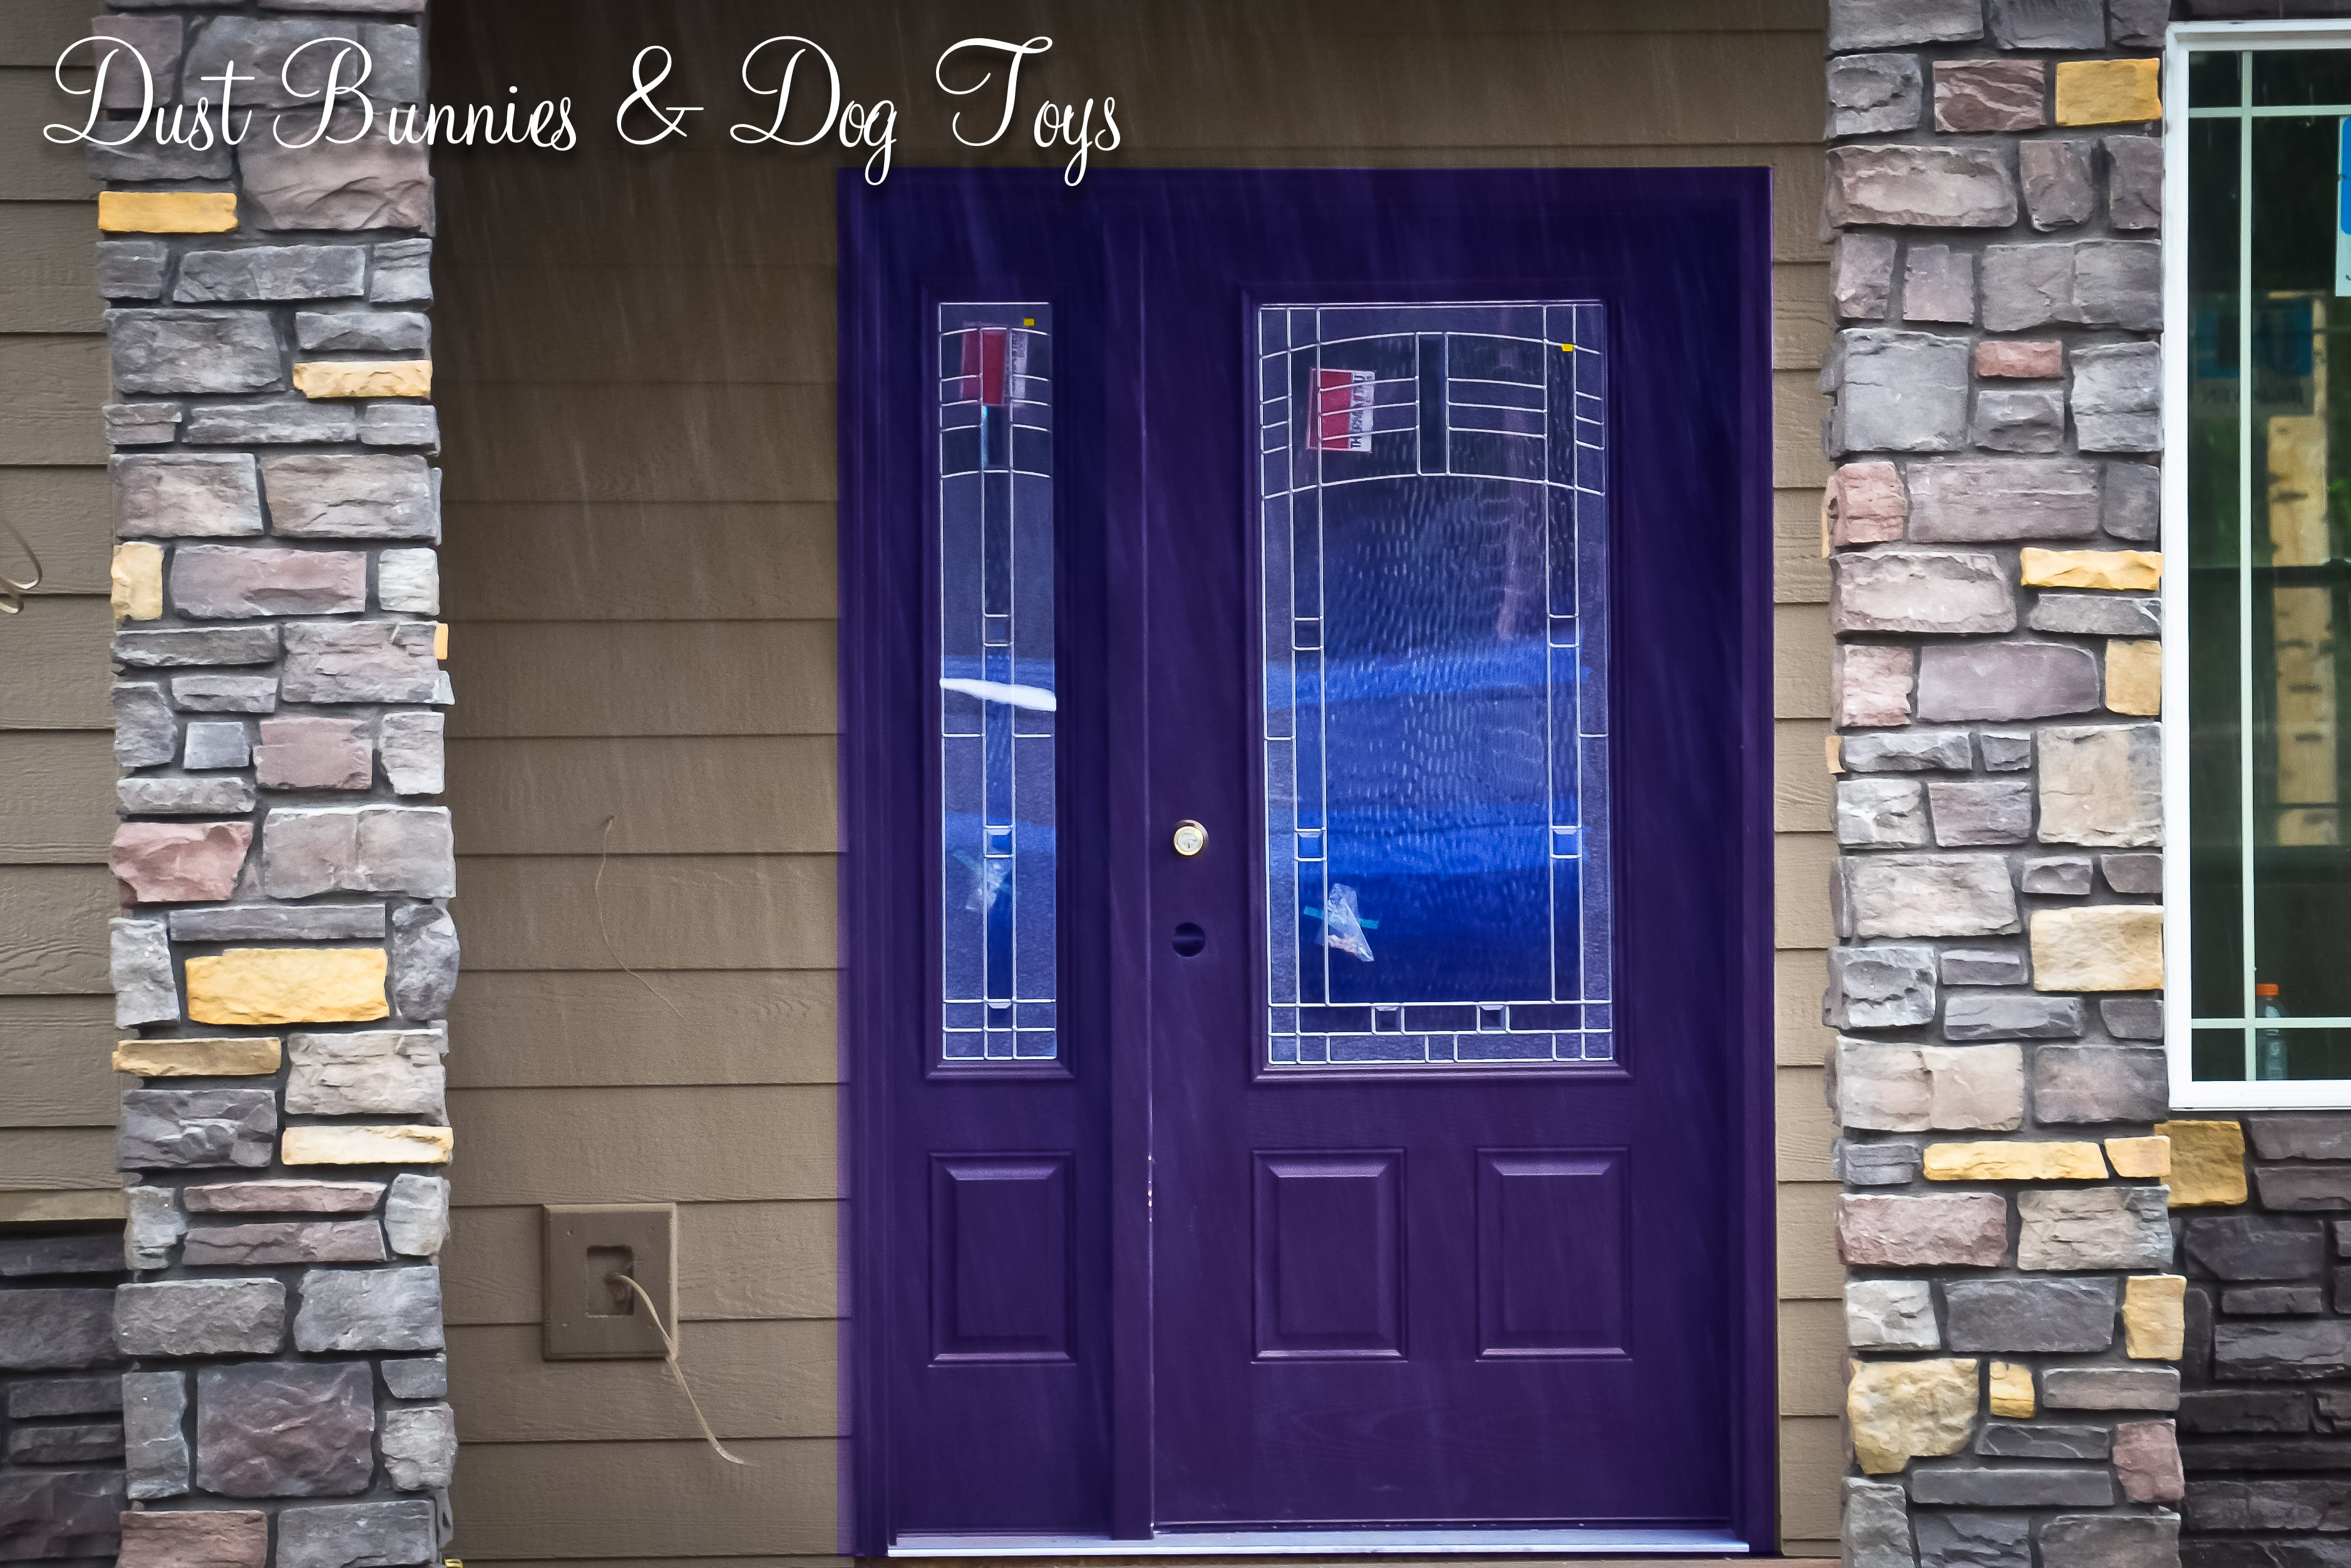 2505 #304C9C Door2 wallpaper Purple Front Doors 47053755